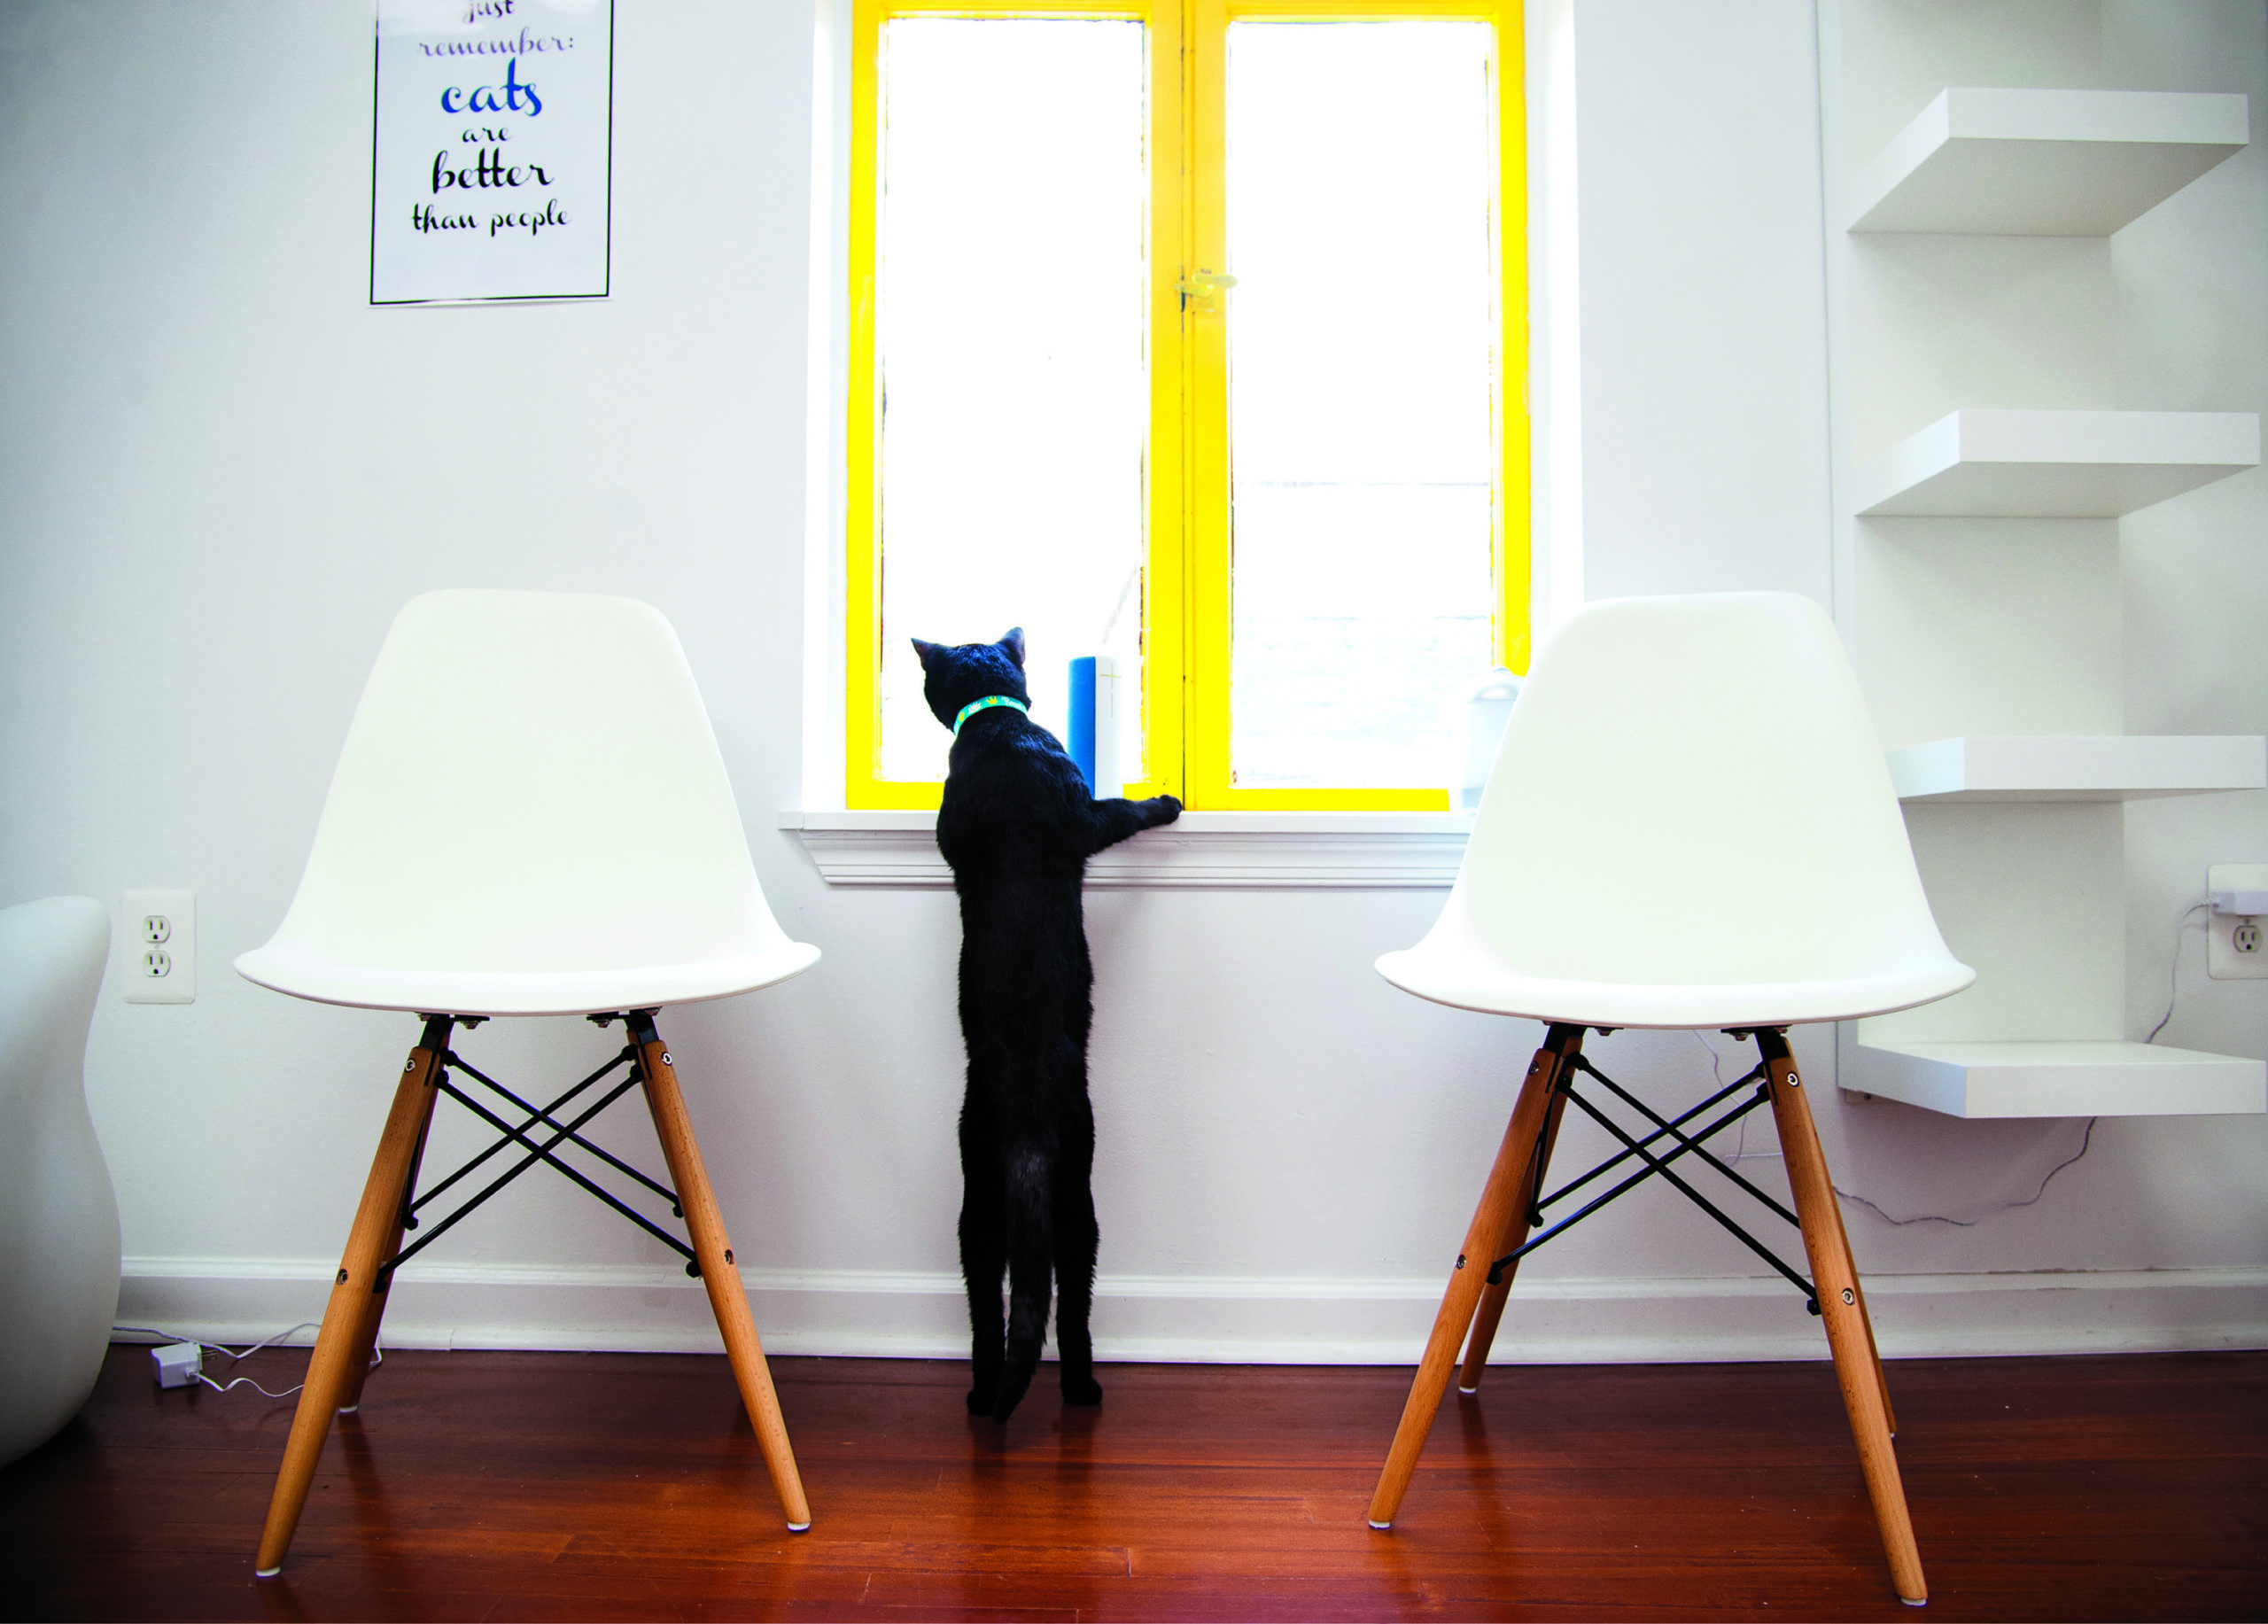 At DC's Cat Cafes, You Can Cuddle Kittens and Write Trump's Name on a Litter Box